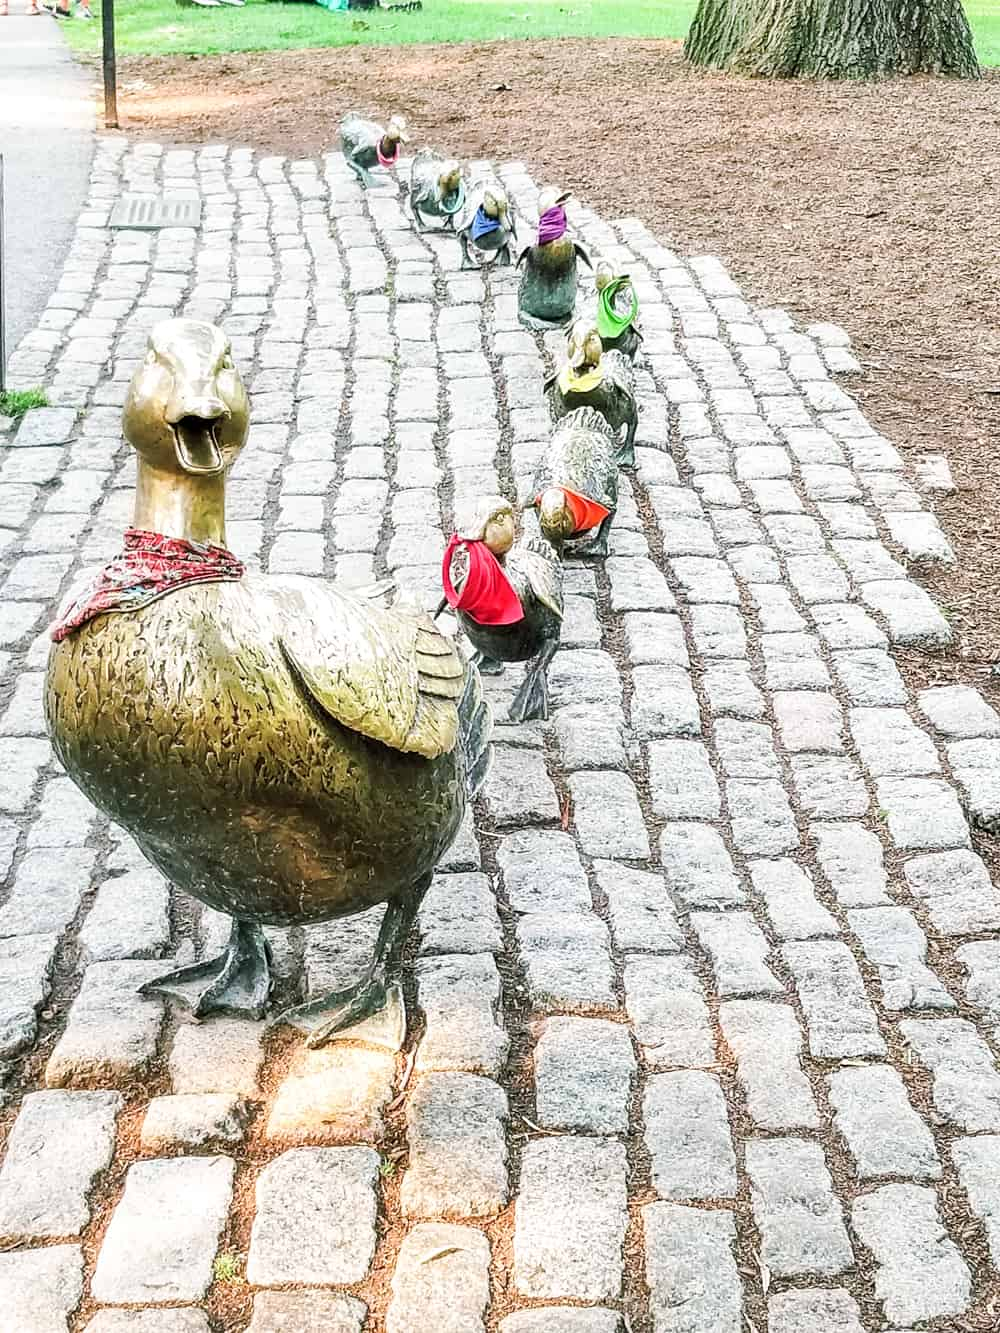 Make Way for Duckling Statue